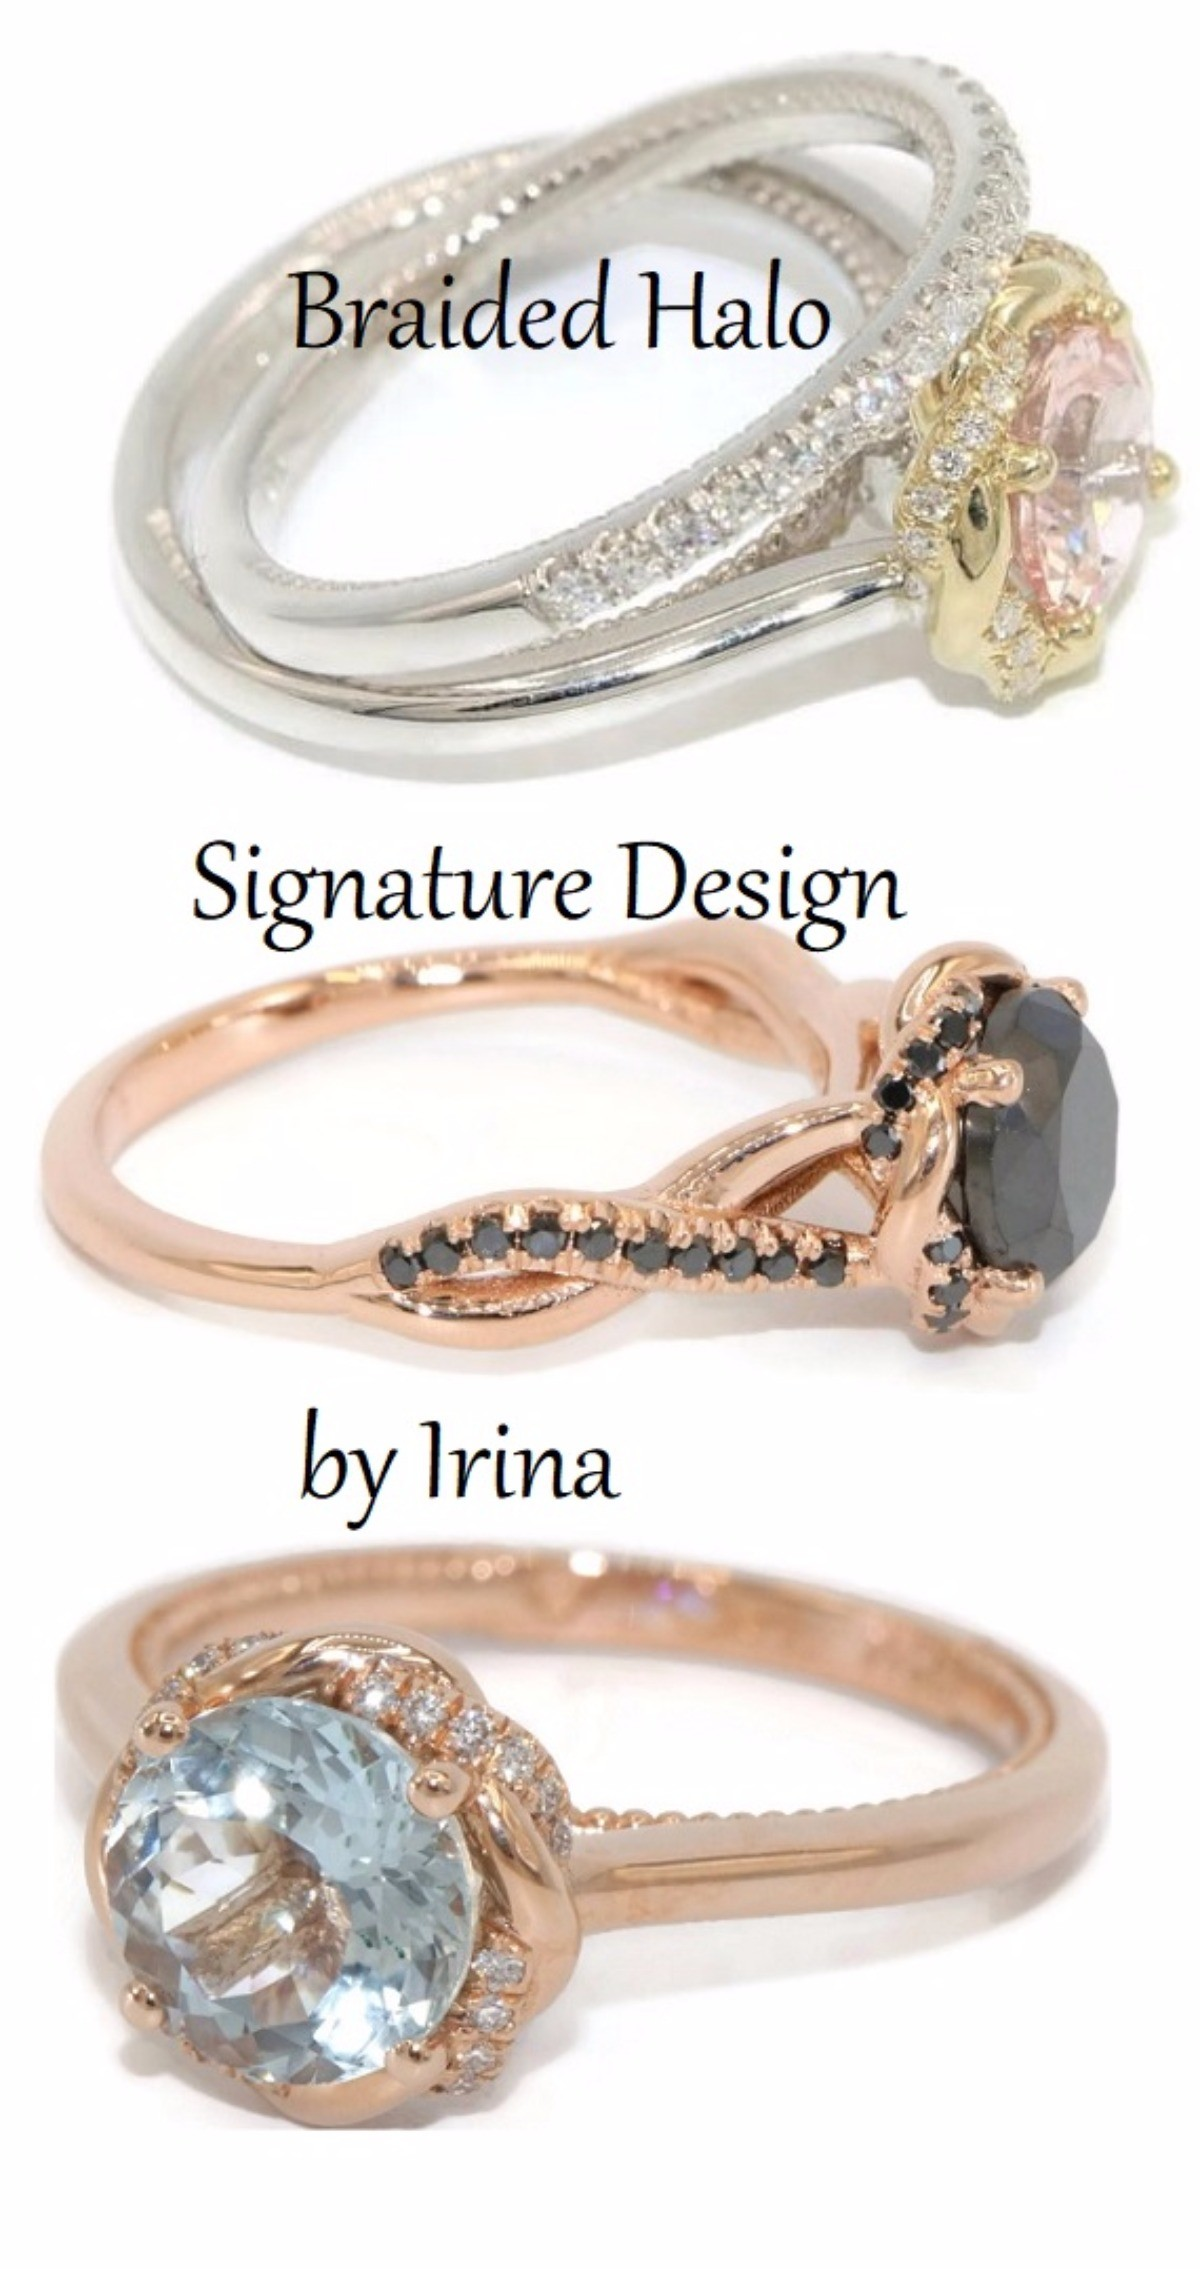 Custom Ring by Irina